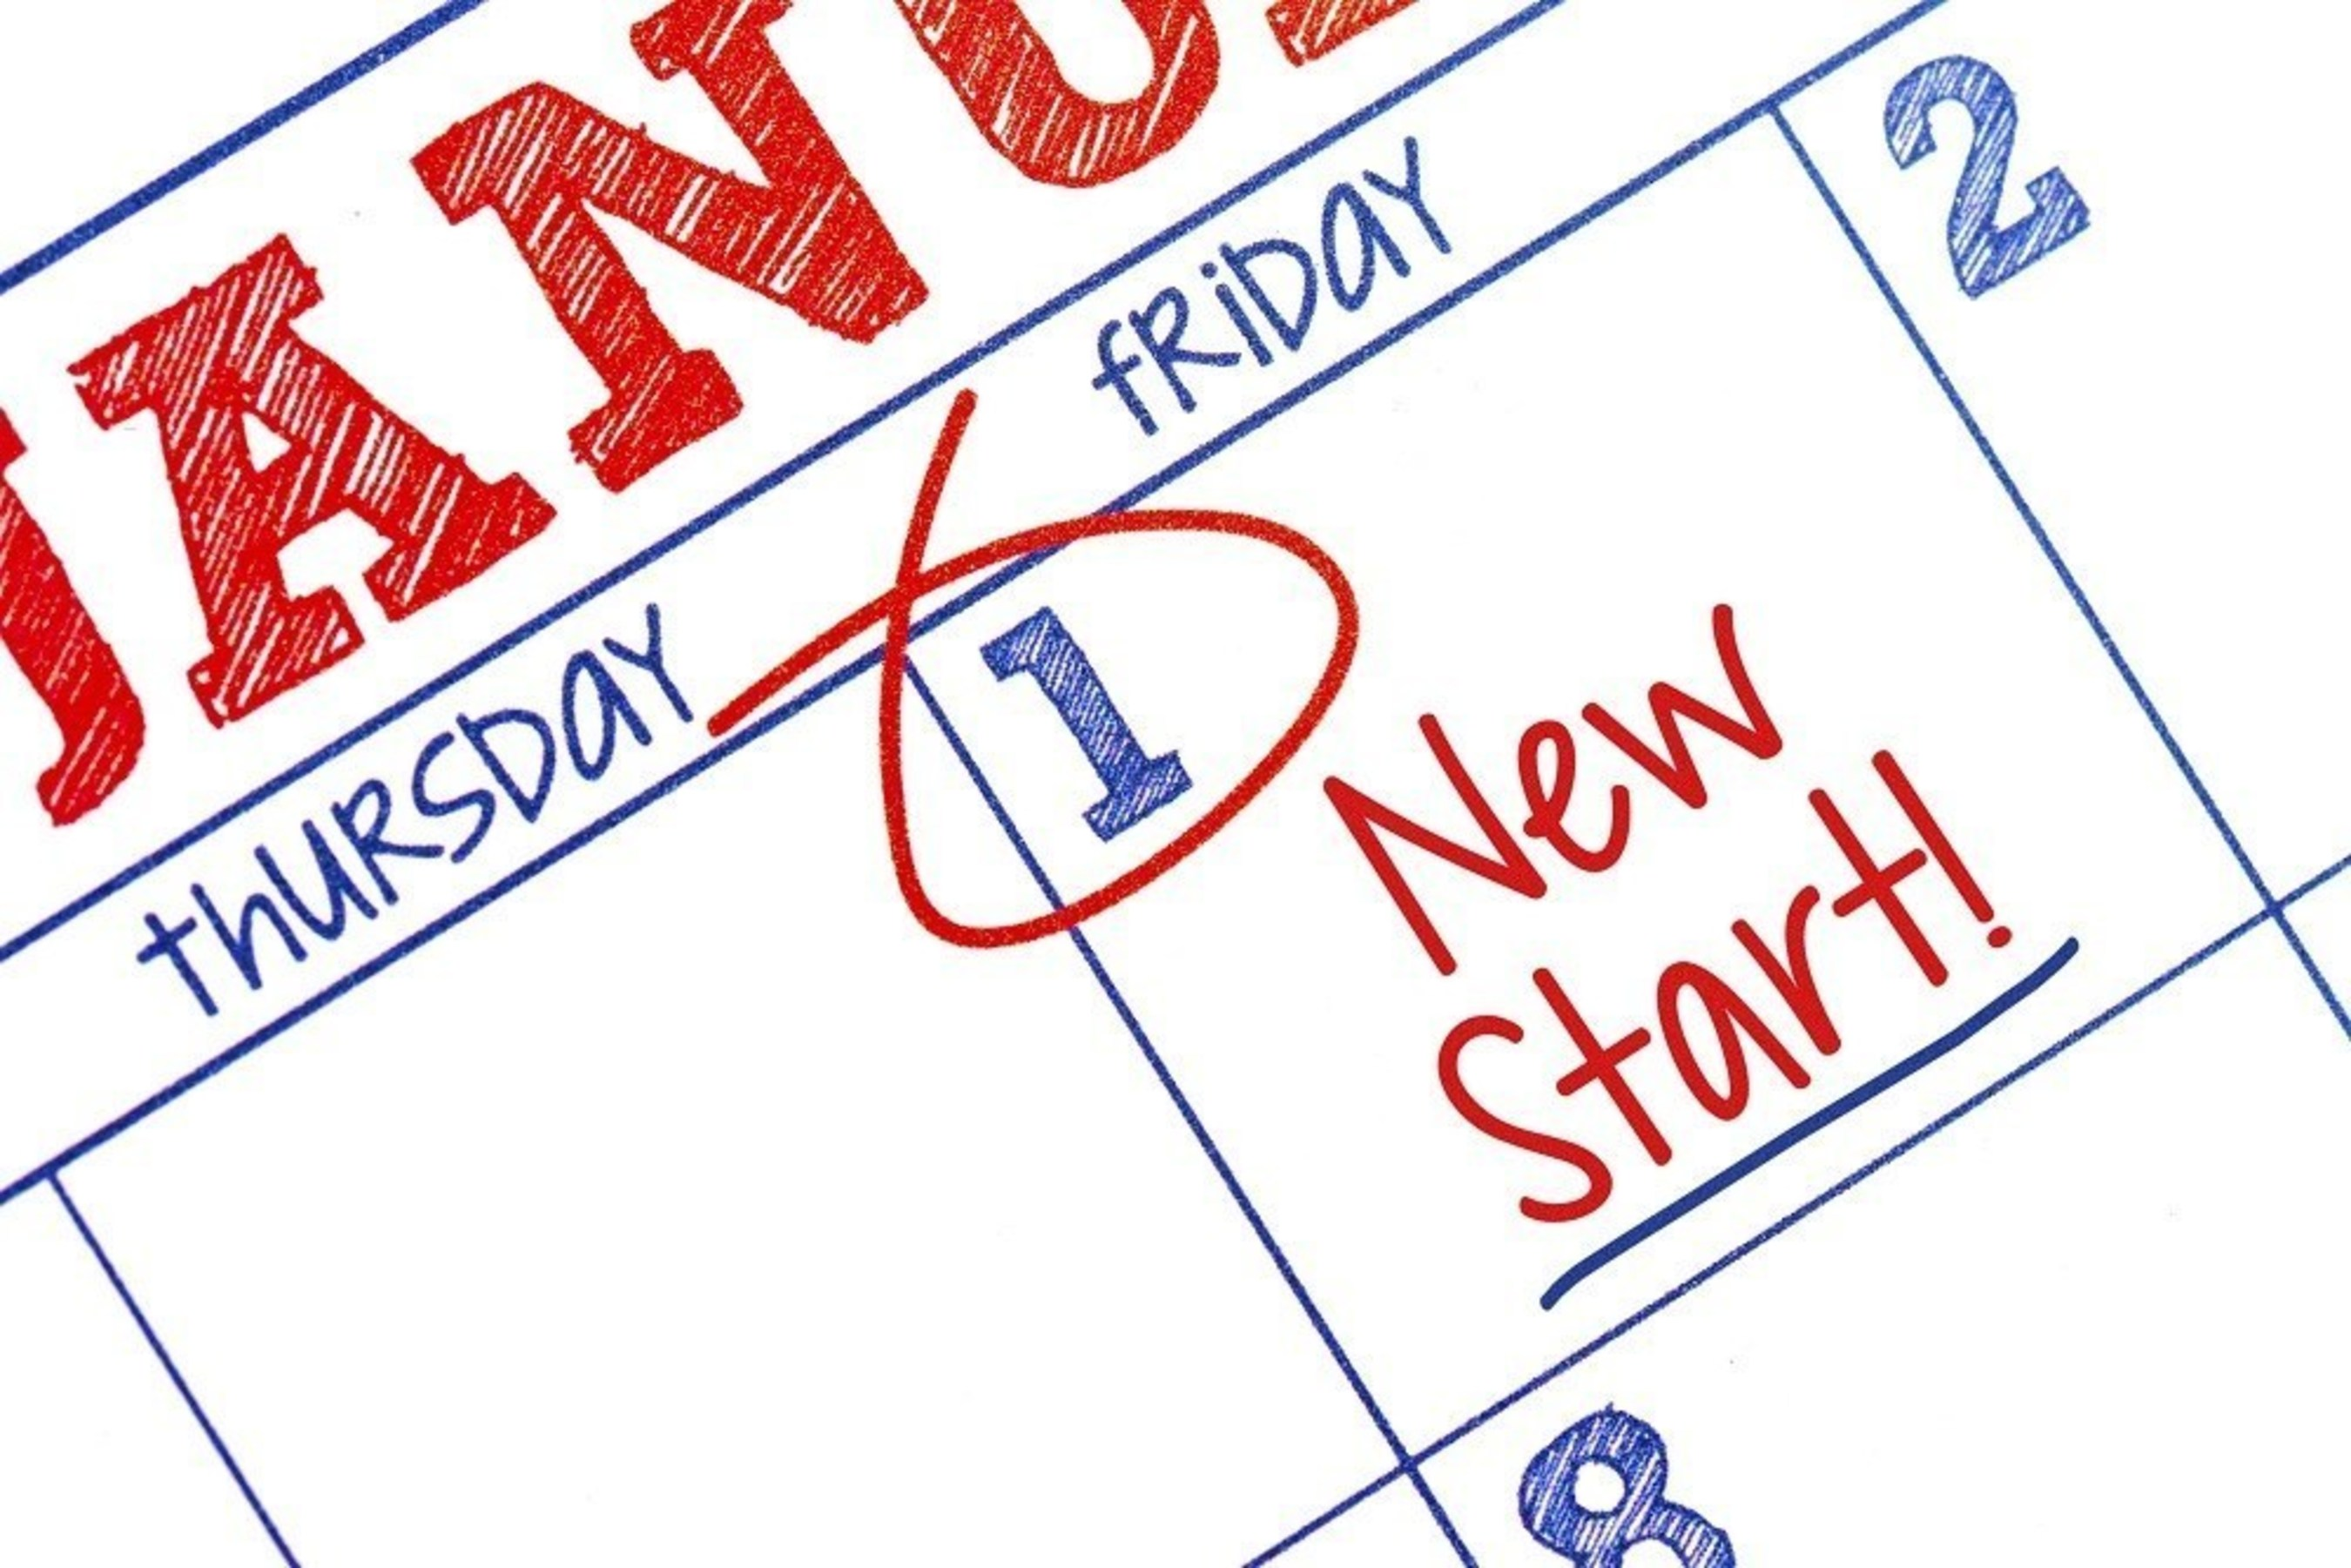 'Ask, Don't Tell' Approach Key to Keeping New Year's Resolutions